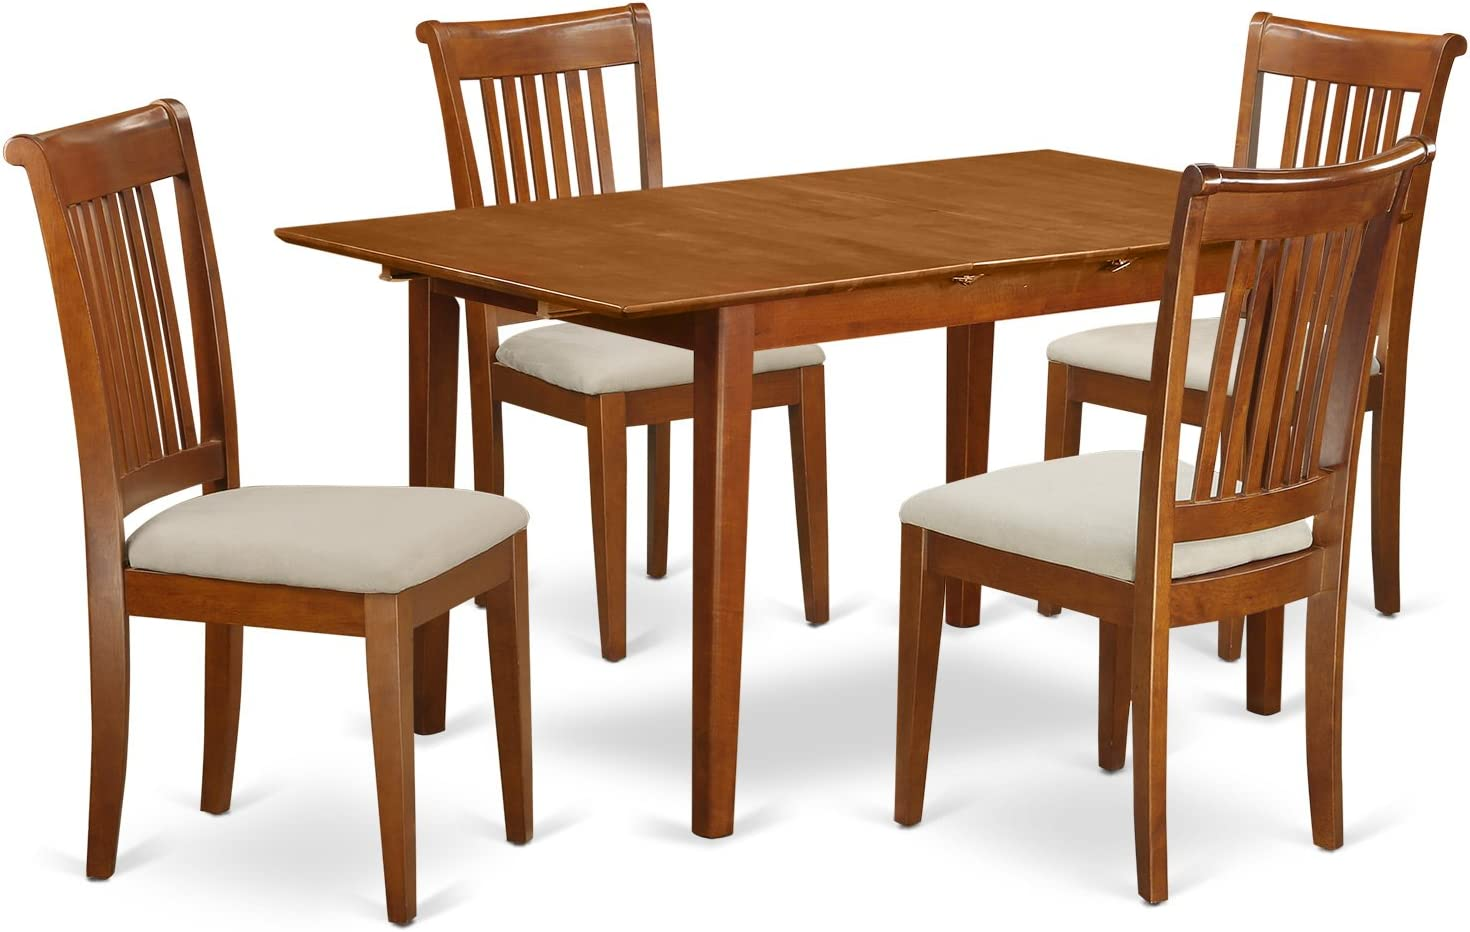 PSPO5-SBR-C 5 Pc small Kitchen Table set Table with Leaf and 4 Dining Chairs